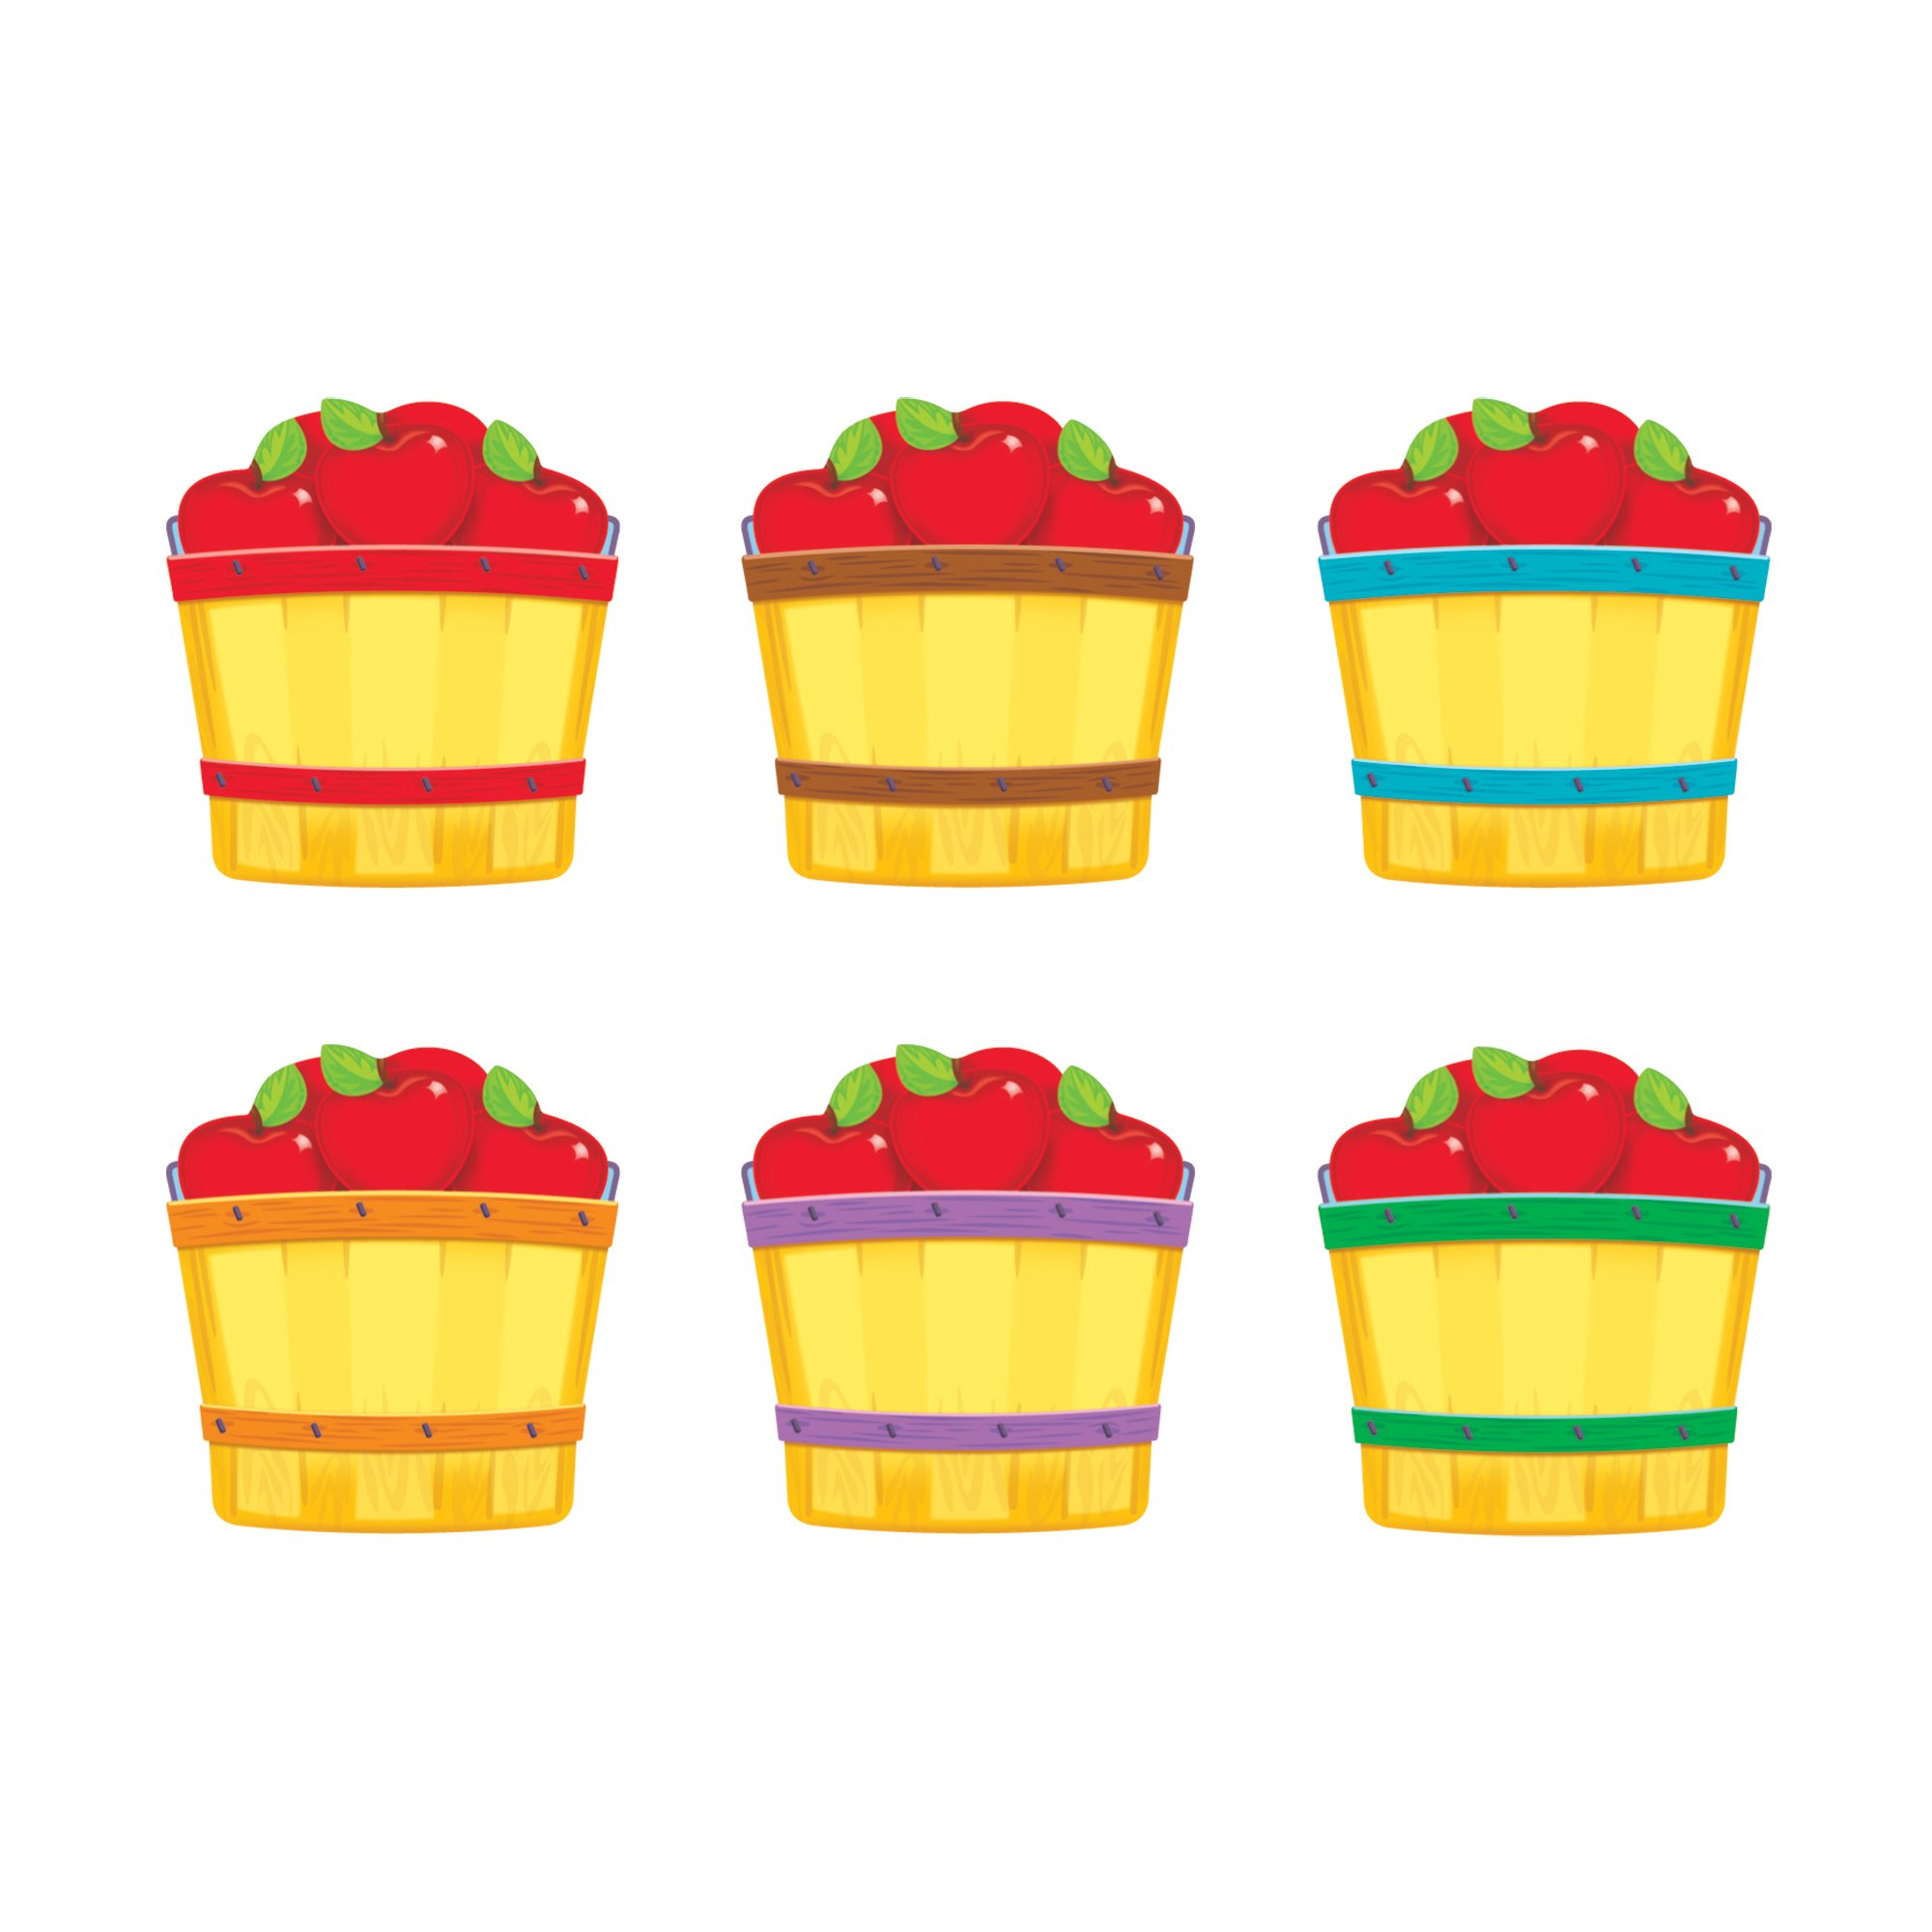 TREND enterprises, Inc. T-10855BN Apple Baskets Mini Accents Variety Pack, 36 Per Pack, 6 Packs by TREND Enterprises